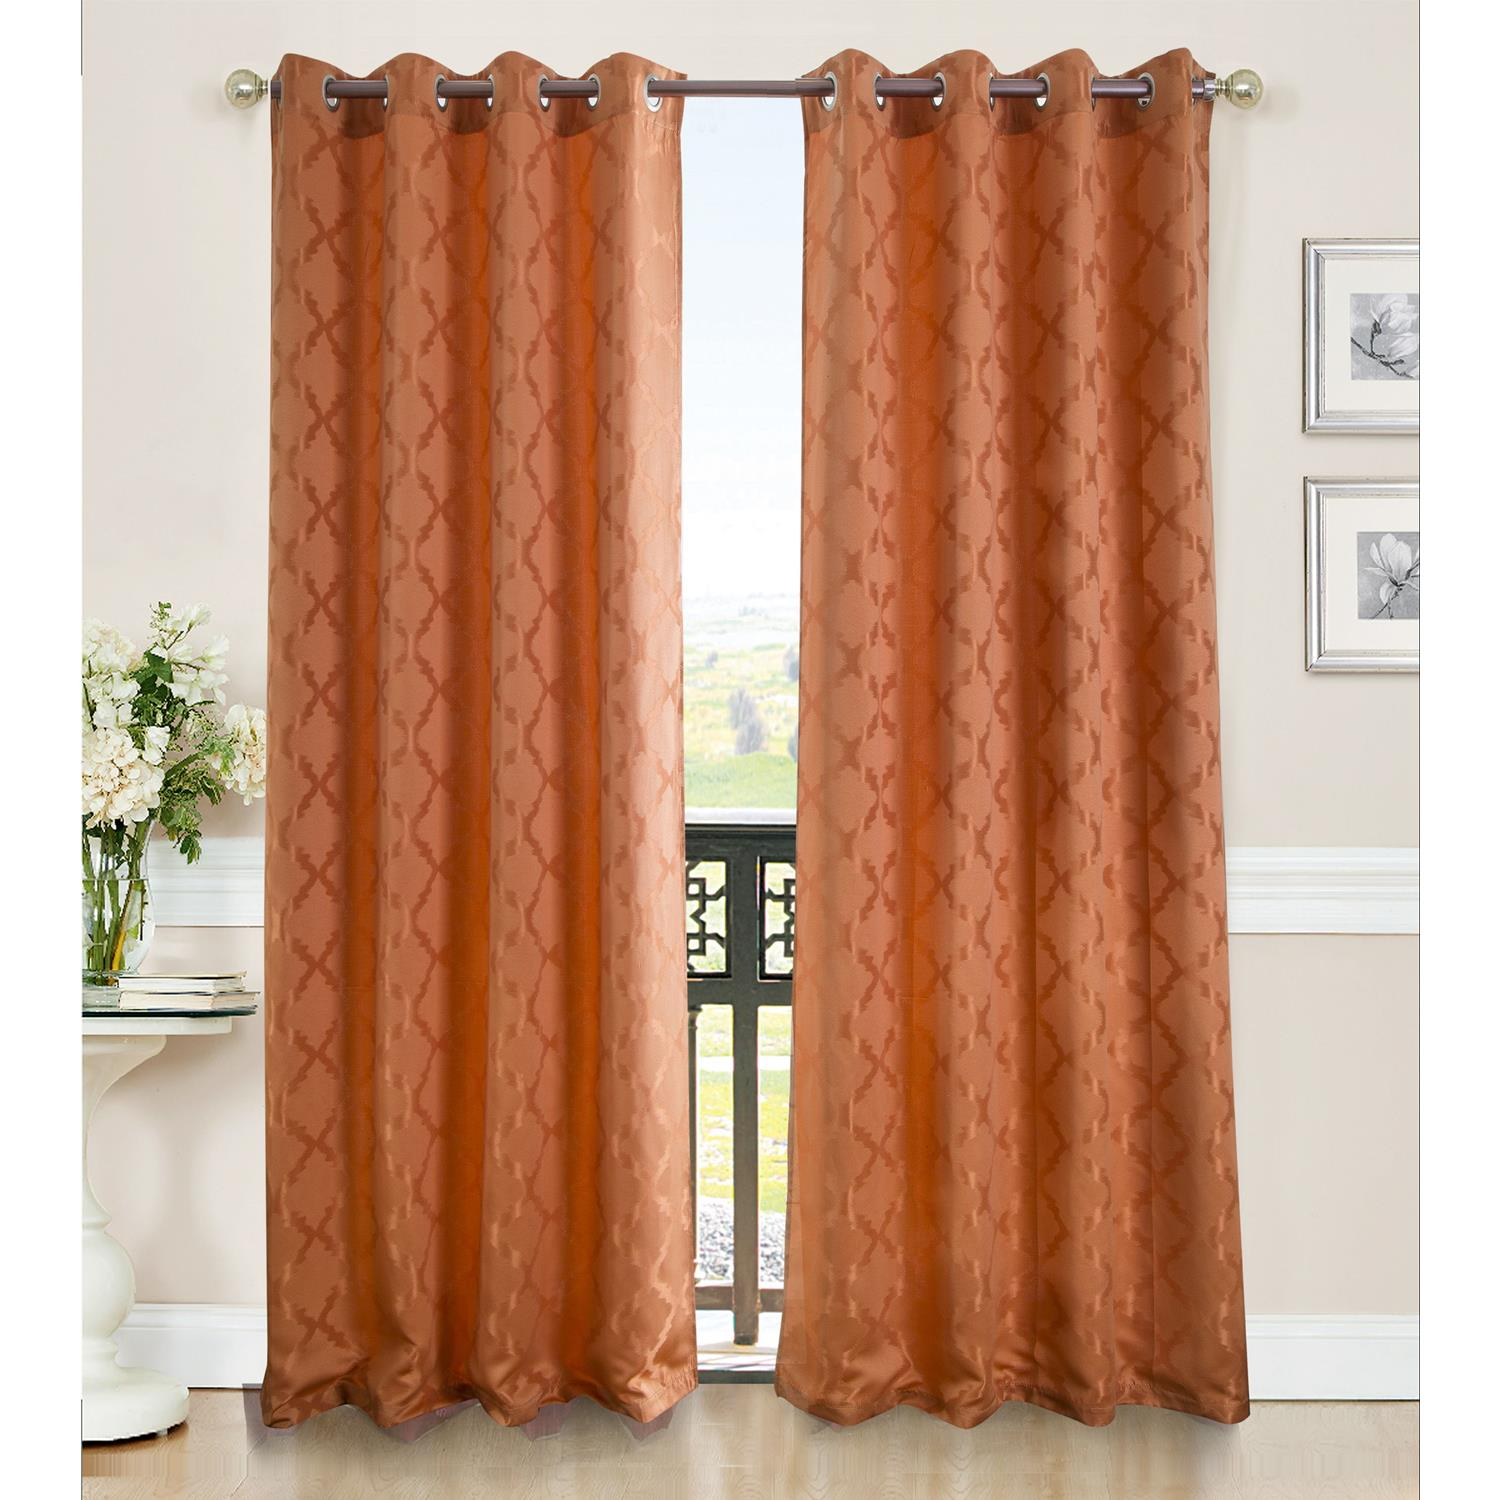 Blackout Curtains 90 X 54 Lenny Grommet Curtain Panel 54 X 90 Ebay